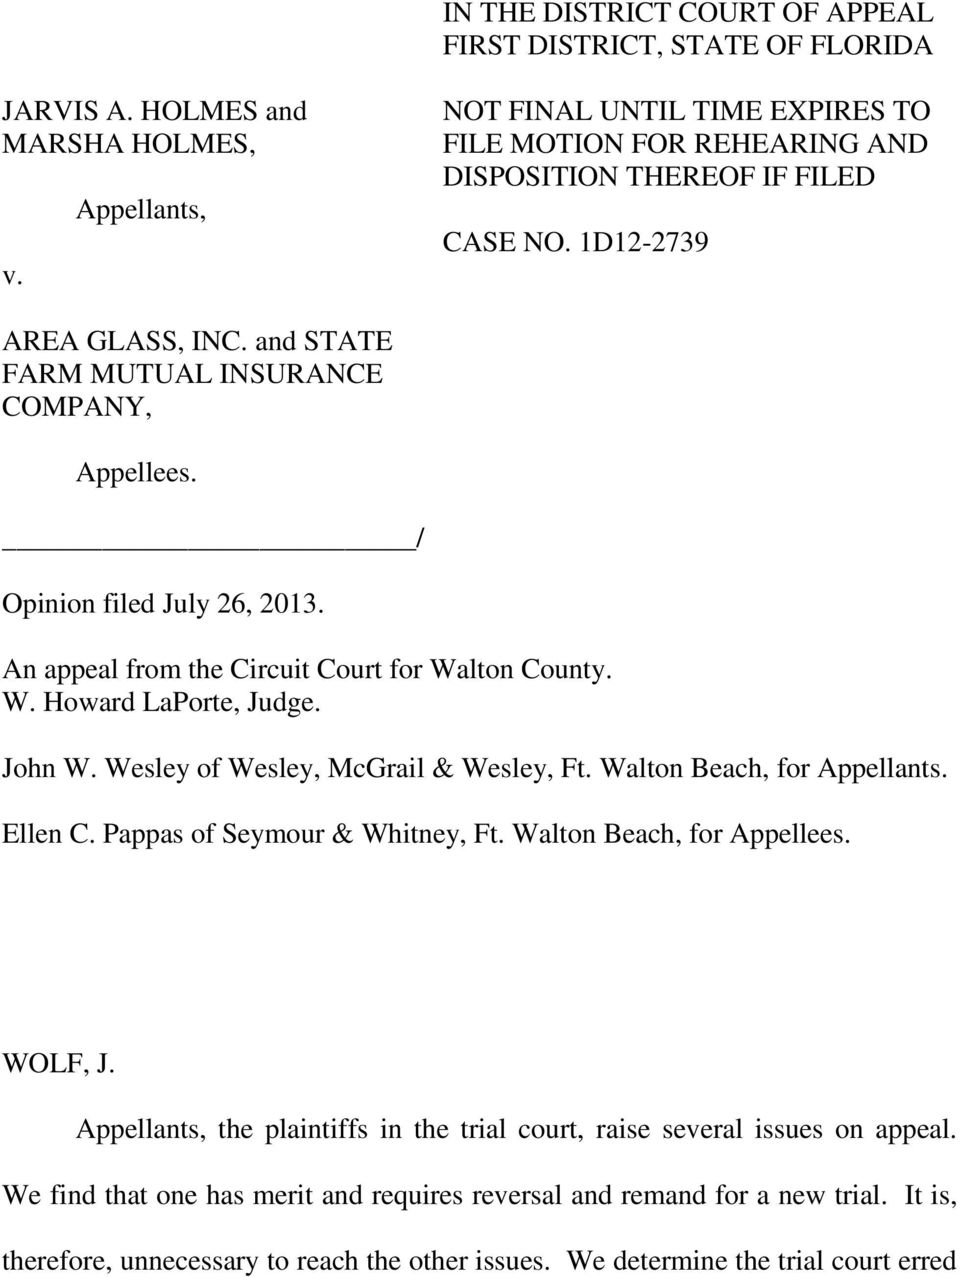 / Opinion filed July 26, 2013. An appeal from the Circuit Court for Walton County. W. Howard LaPorte, Judge. John W. Wesley of Wesley, McGrail & Wesley, Ft. Walton Beach, for Appellants. Ellen C.